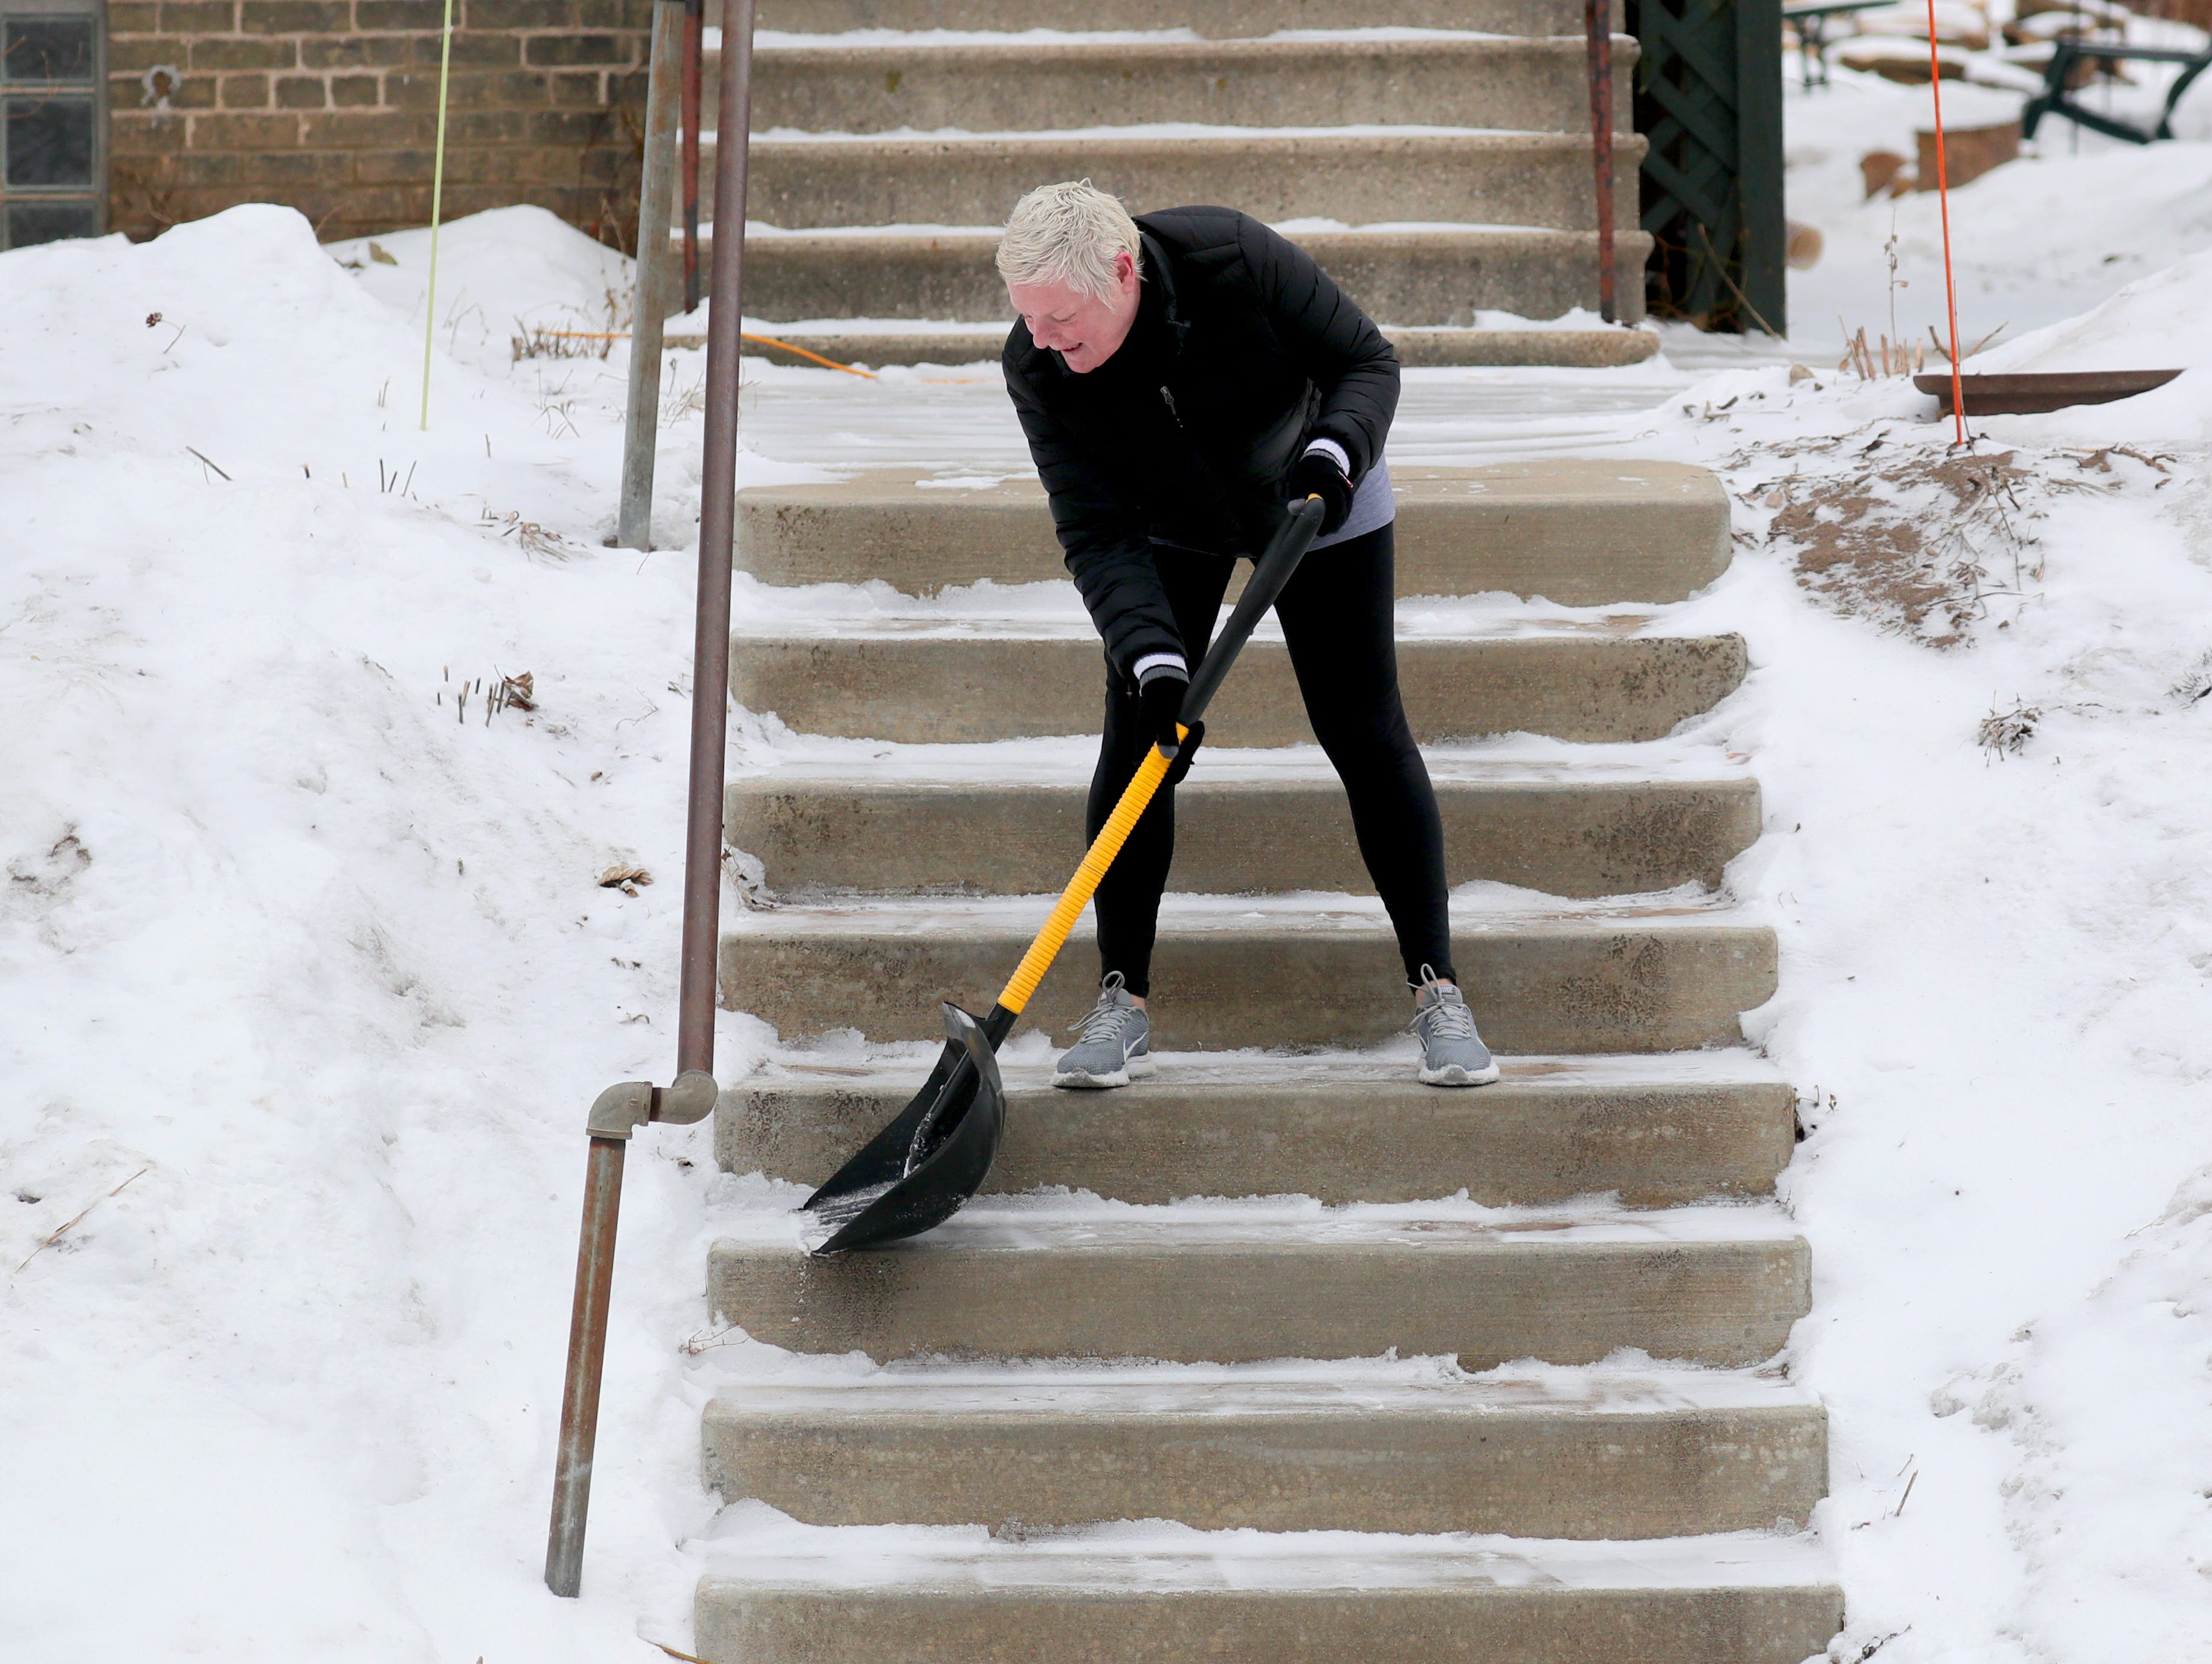 Karen Nastulski shovels a fresh coat of snow on steps in front of her home on South Logan Avenue in Bay View on Monday, Feb. 11, 2019. The National Weather Service has issued a winter storm warning for central, northern and northeastern Wisconsin from 9 p.m. Monday until 12 a.m. Wednesday. Photo by Mike De Sisti / Milwaukee Journal Sentinel